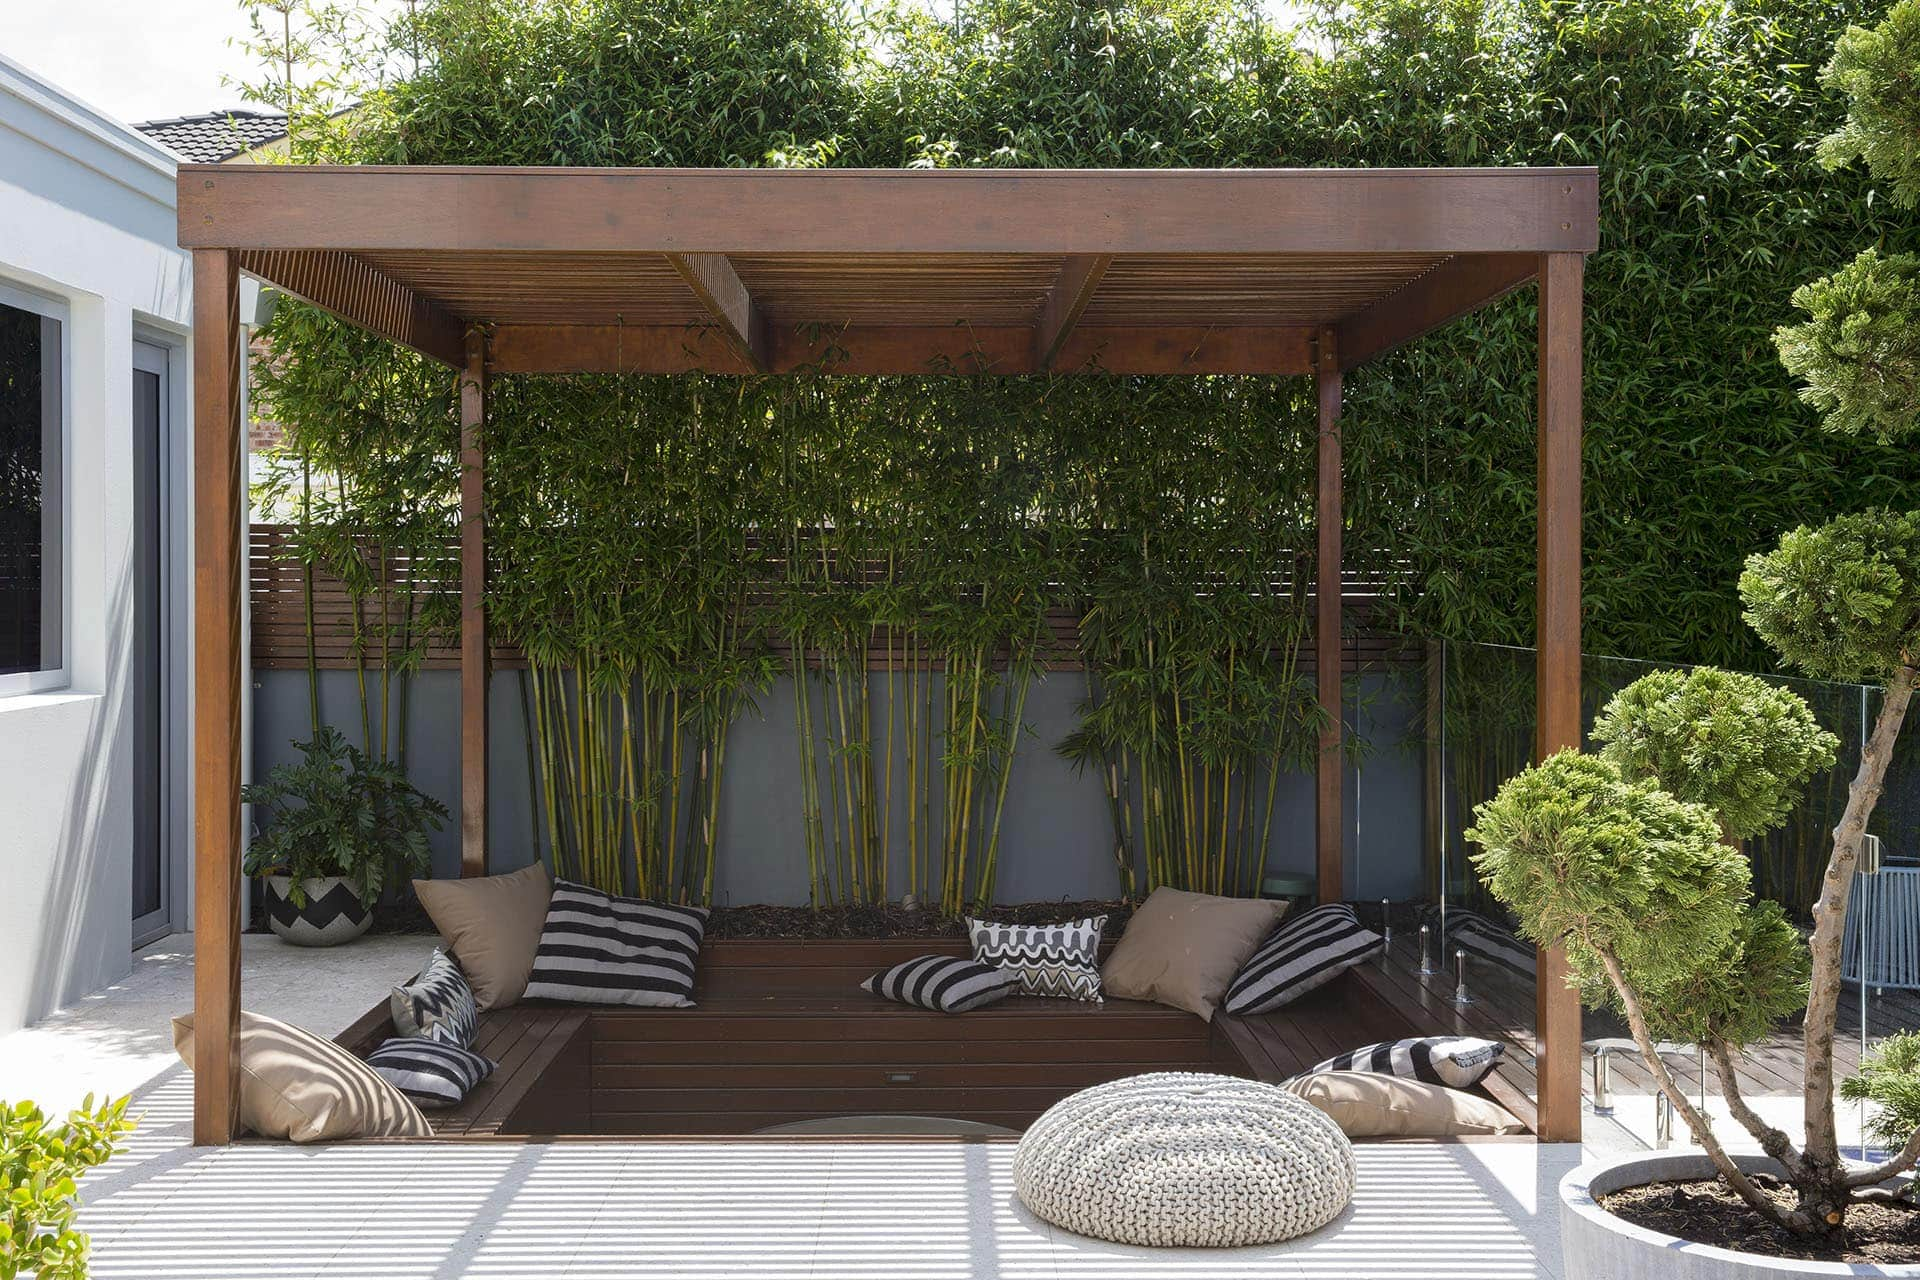 Sunken outdoor lounge area with timber benches and outdoor cushions